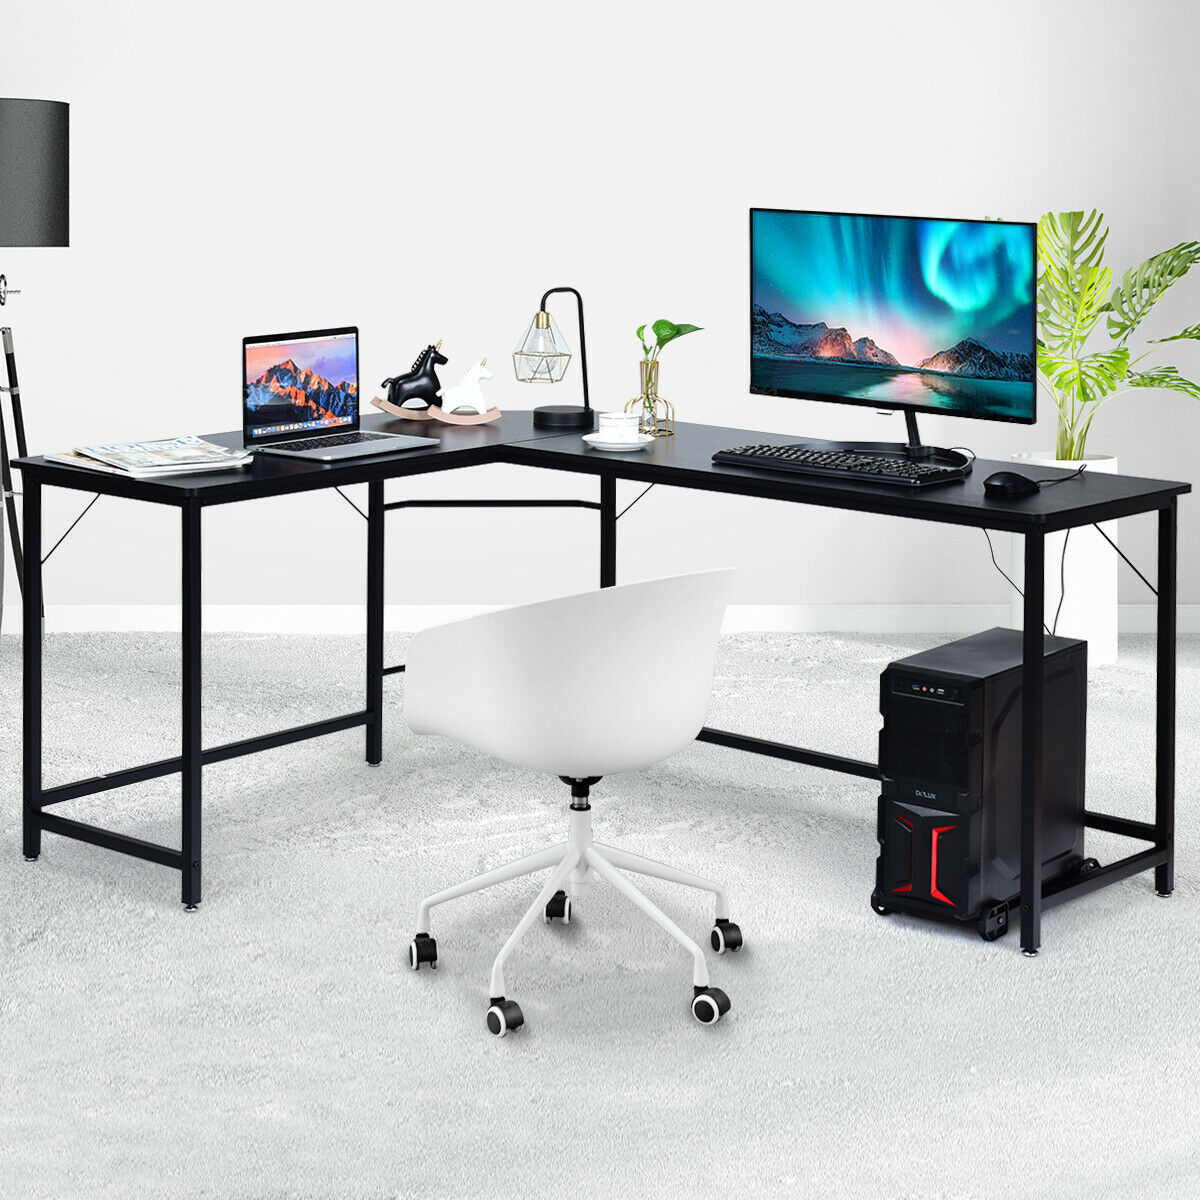 Gymax L Shaped Desk Corner Computer Desk Pc Laptop Gaming Table Workstation Black Natural Brown Walmart Com Walmart Com